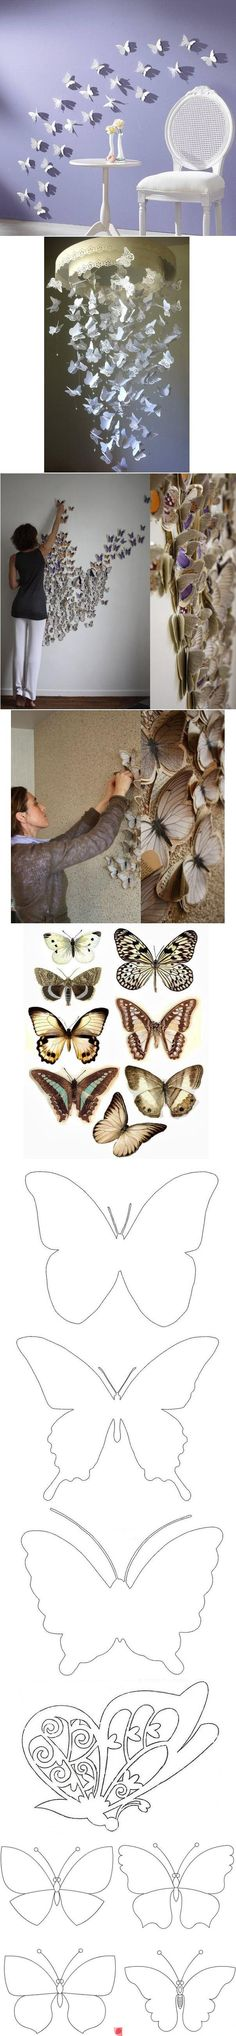 DIY Butterfly Pattern Wall Decor....lovely ♥ with templates for various butterfly shapes